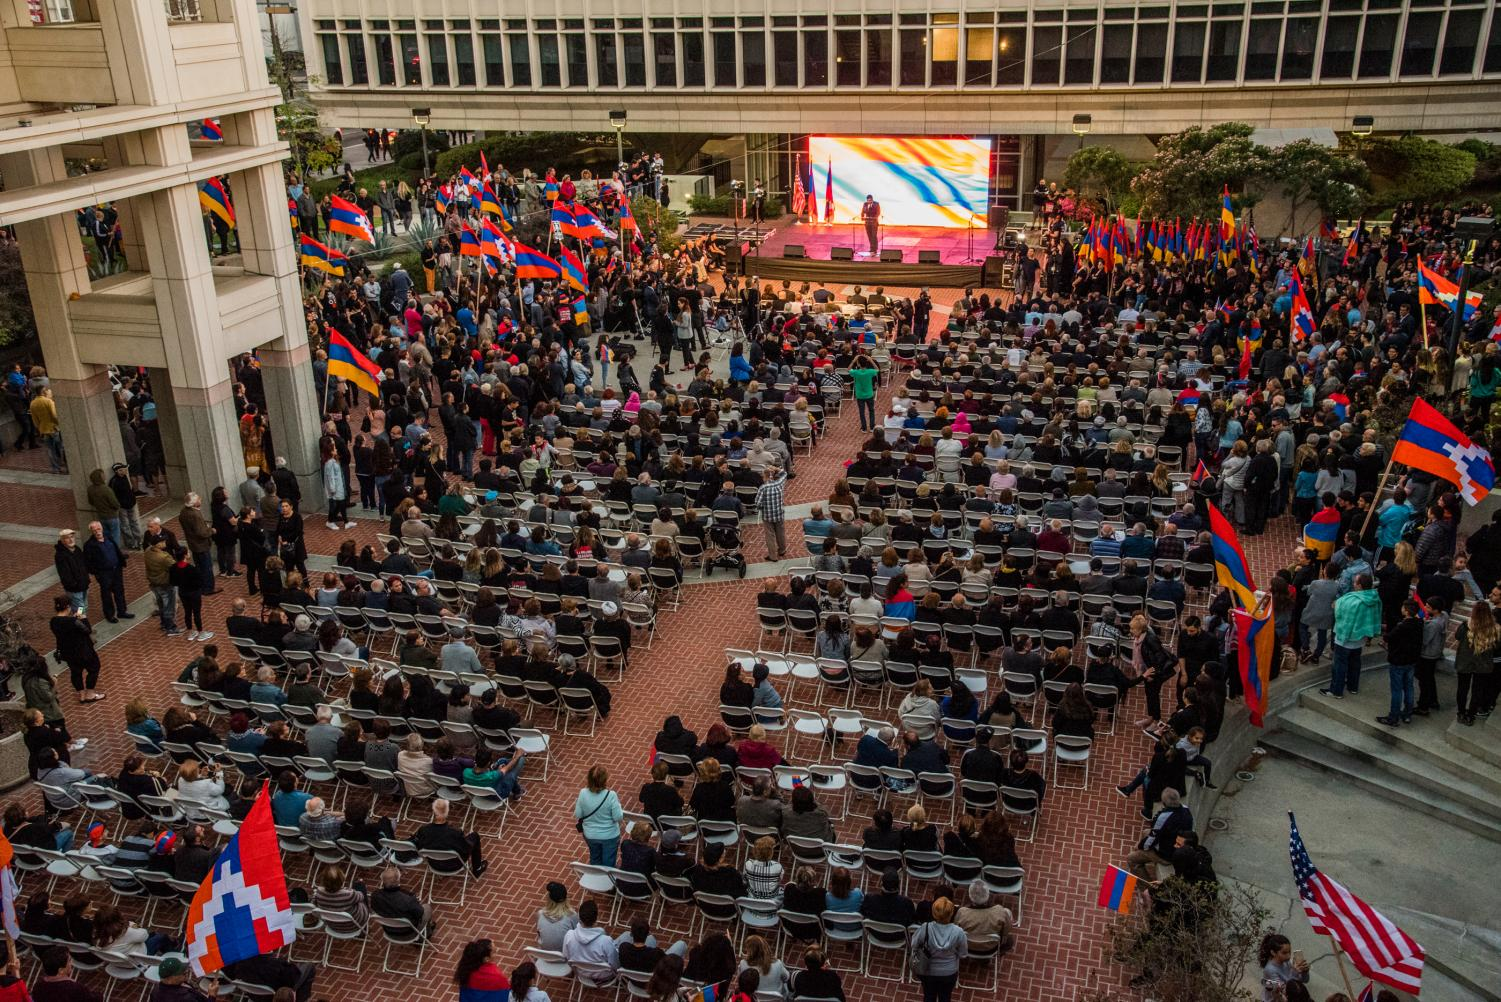 People gather at City Hall on April 23 to commemorate the Armenian Genocide.